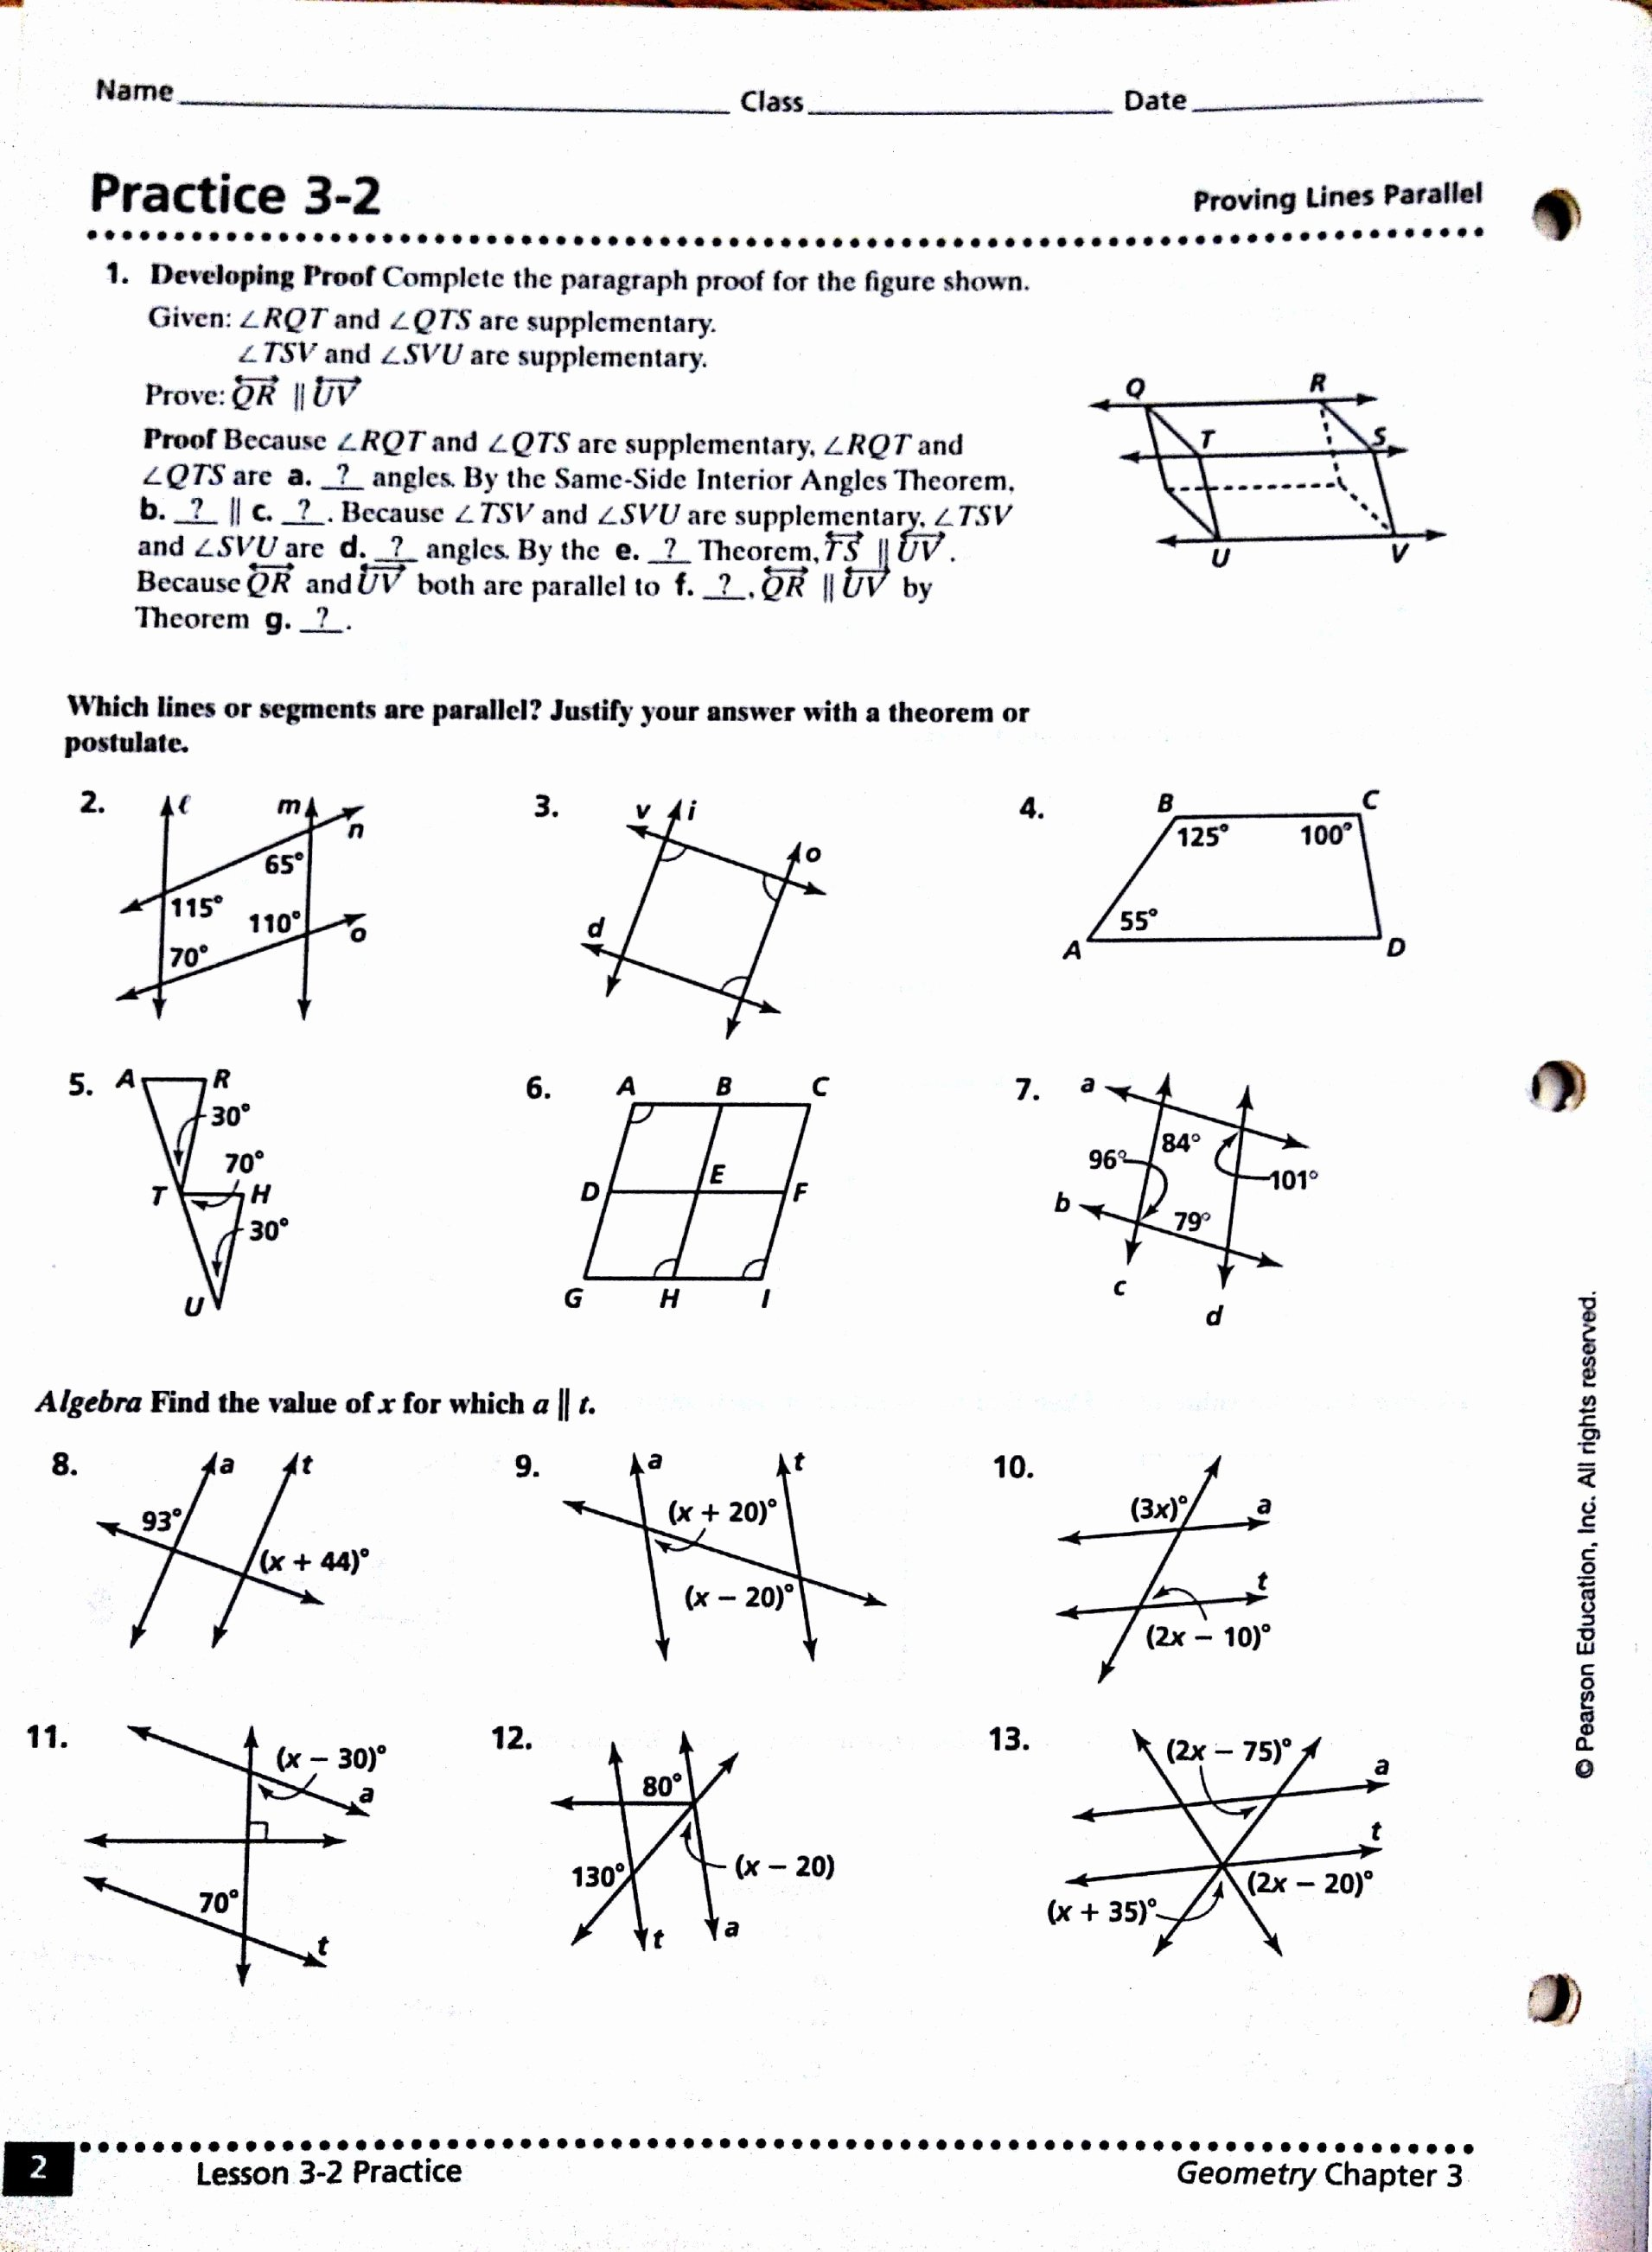 Parallel Lines Proofs Worksheet Answers Elegant Parallel Lines Proofs Worksheet Answers